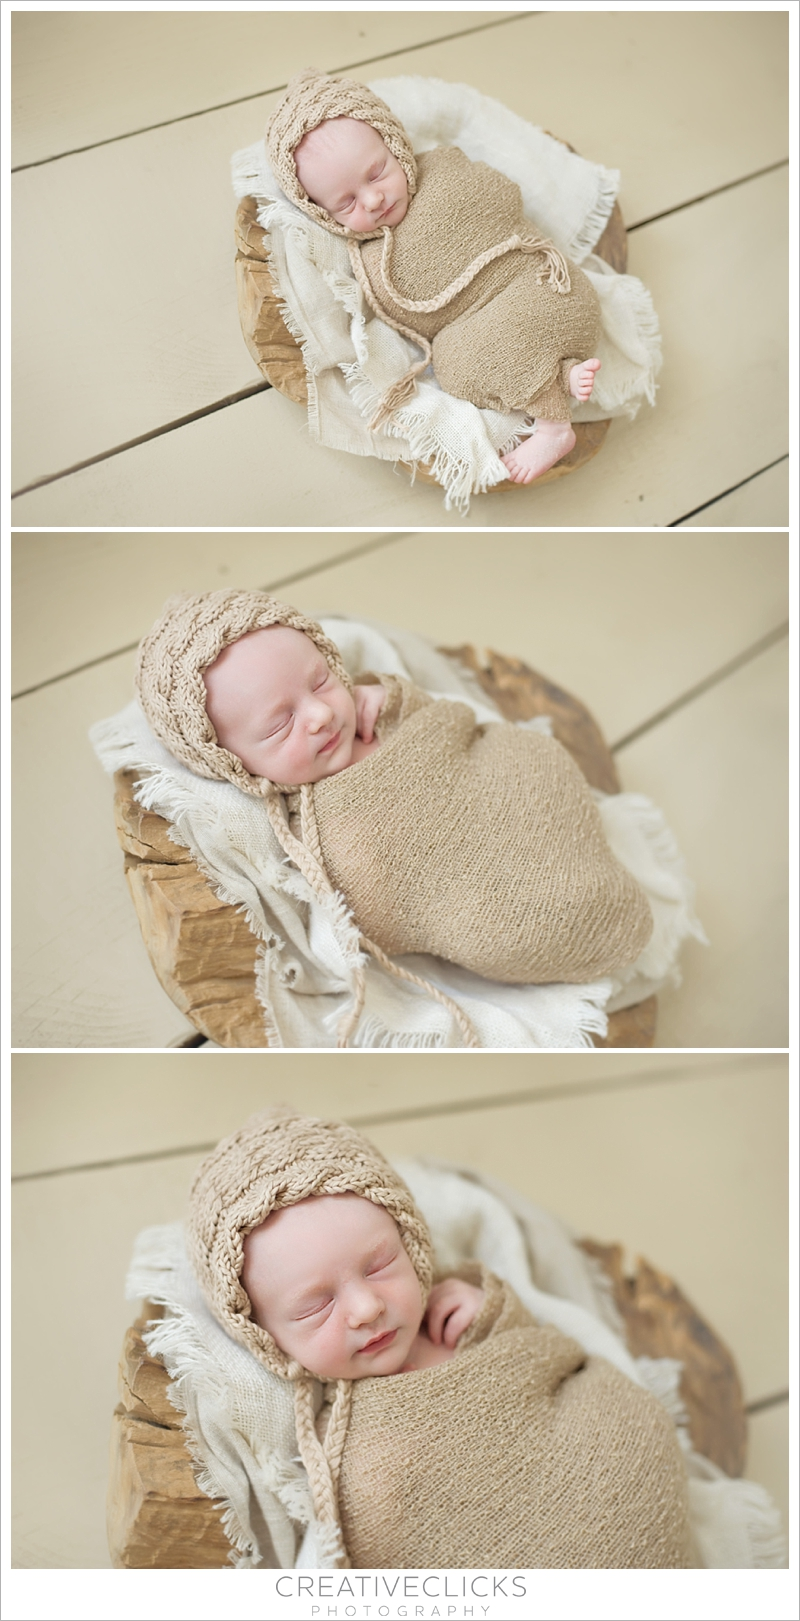 Baby Boy Wrapped Sleeping in Rustic Wooden Bowl